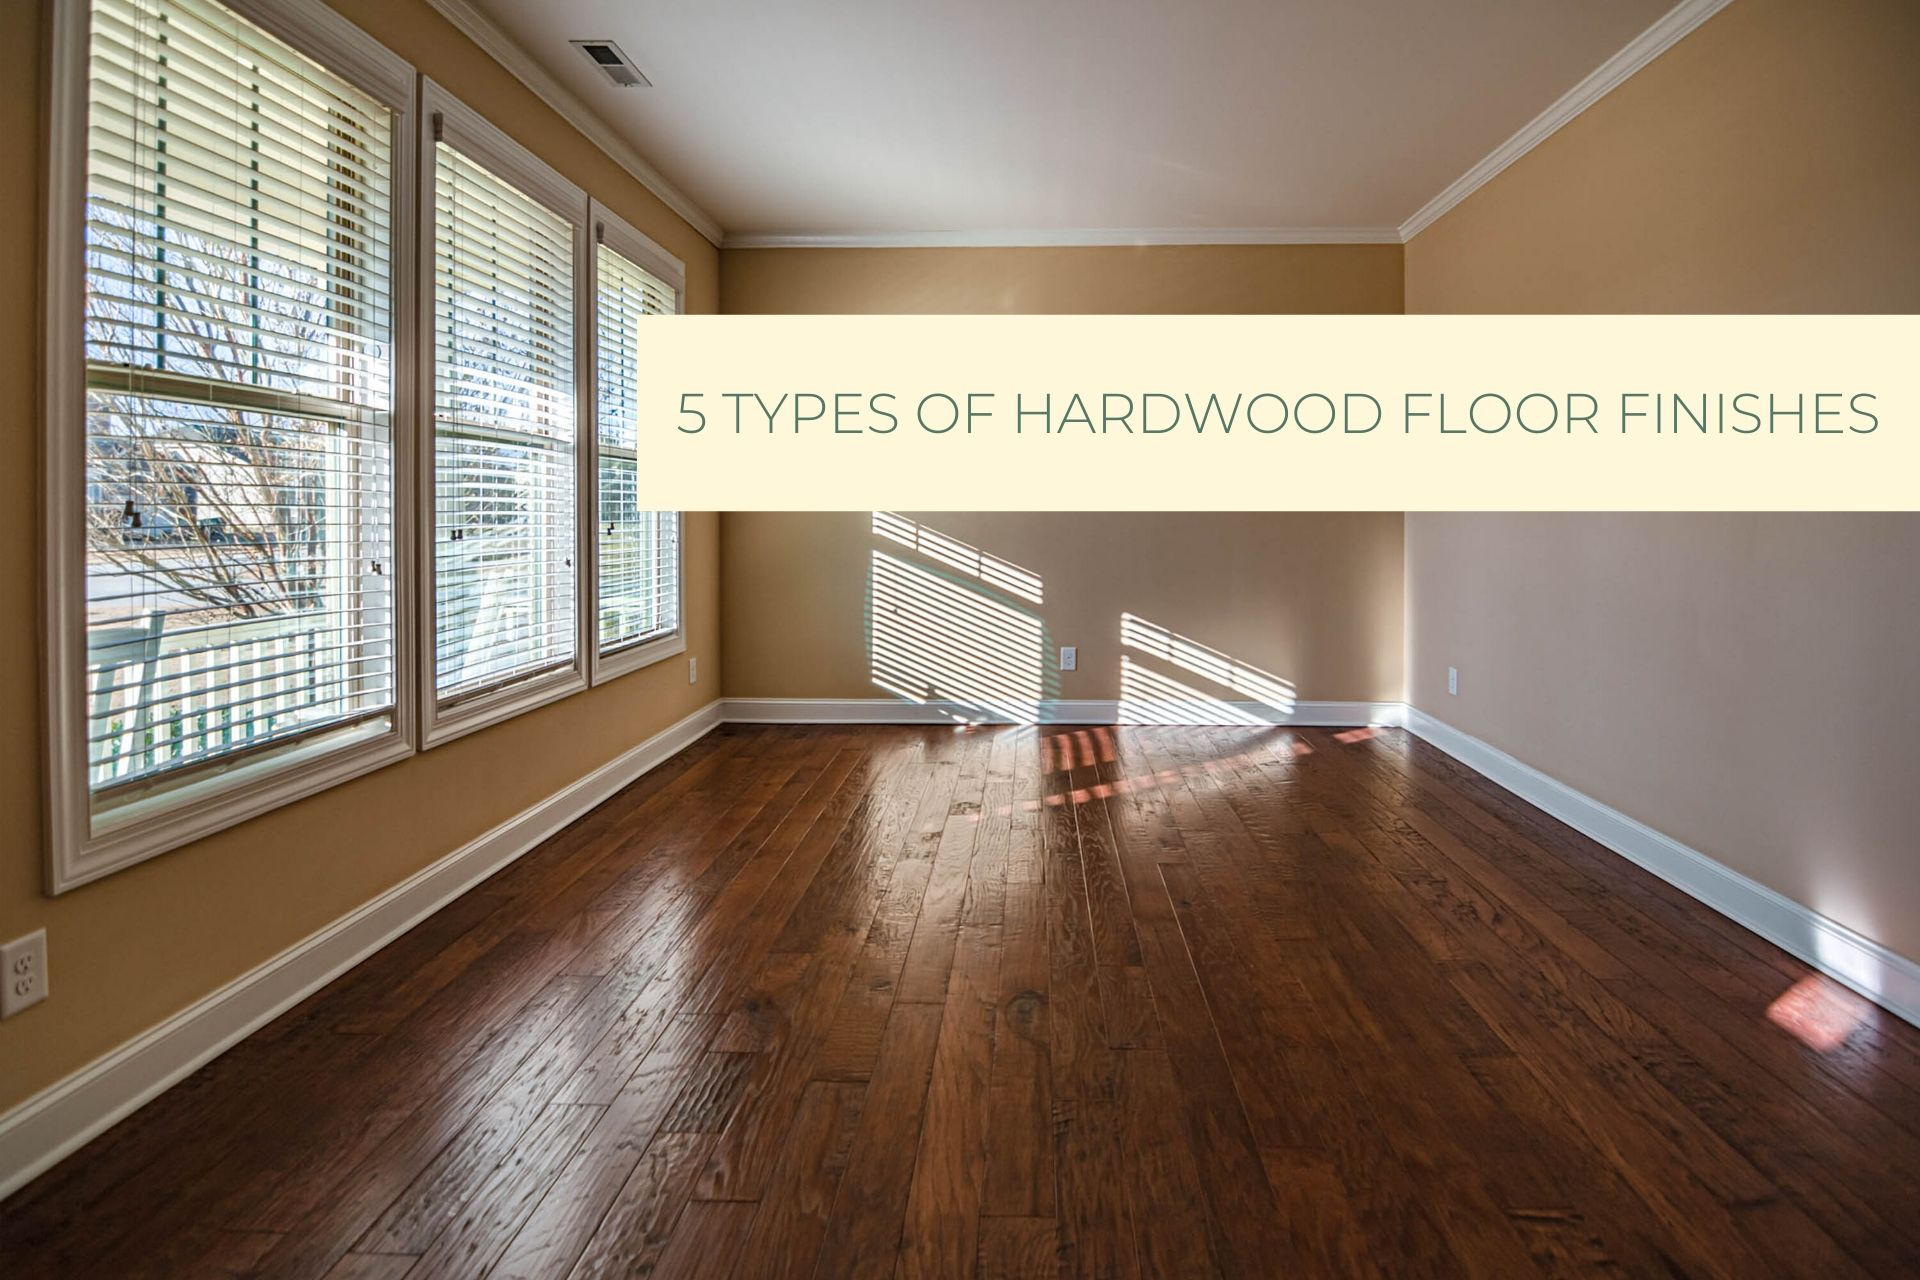 Copy of 5 TYPES OF HARDWOOD FLOOR FINISHES (1)